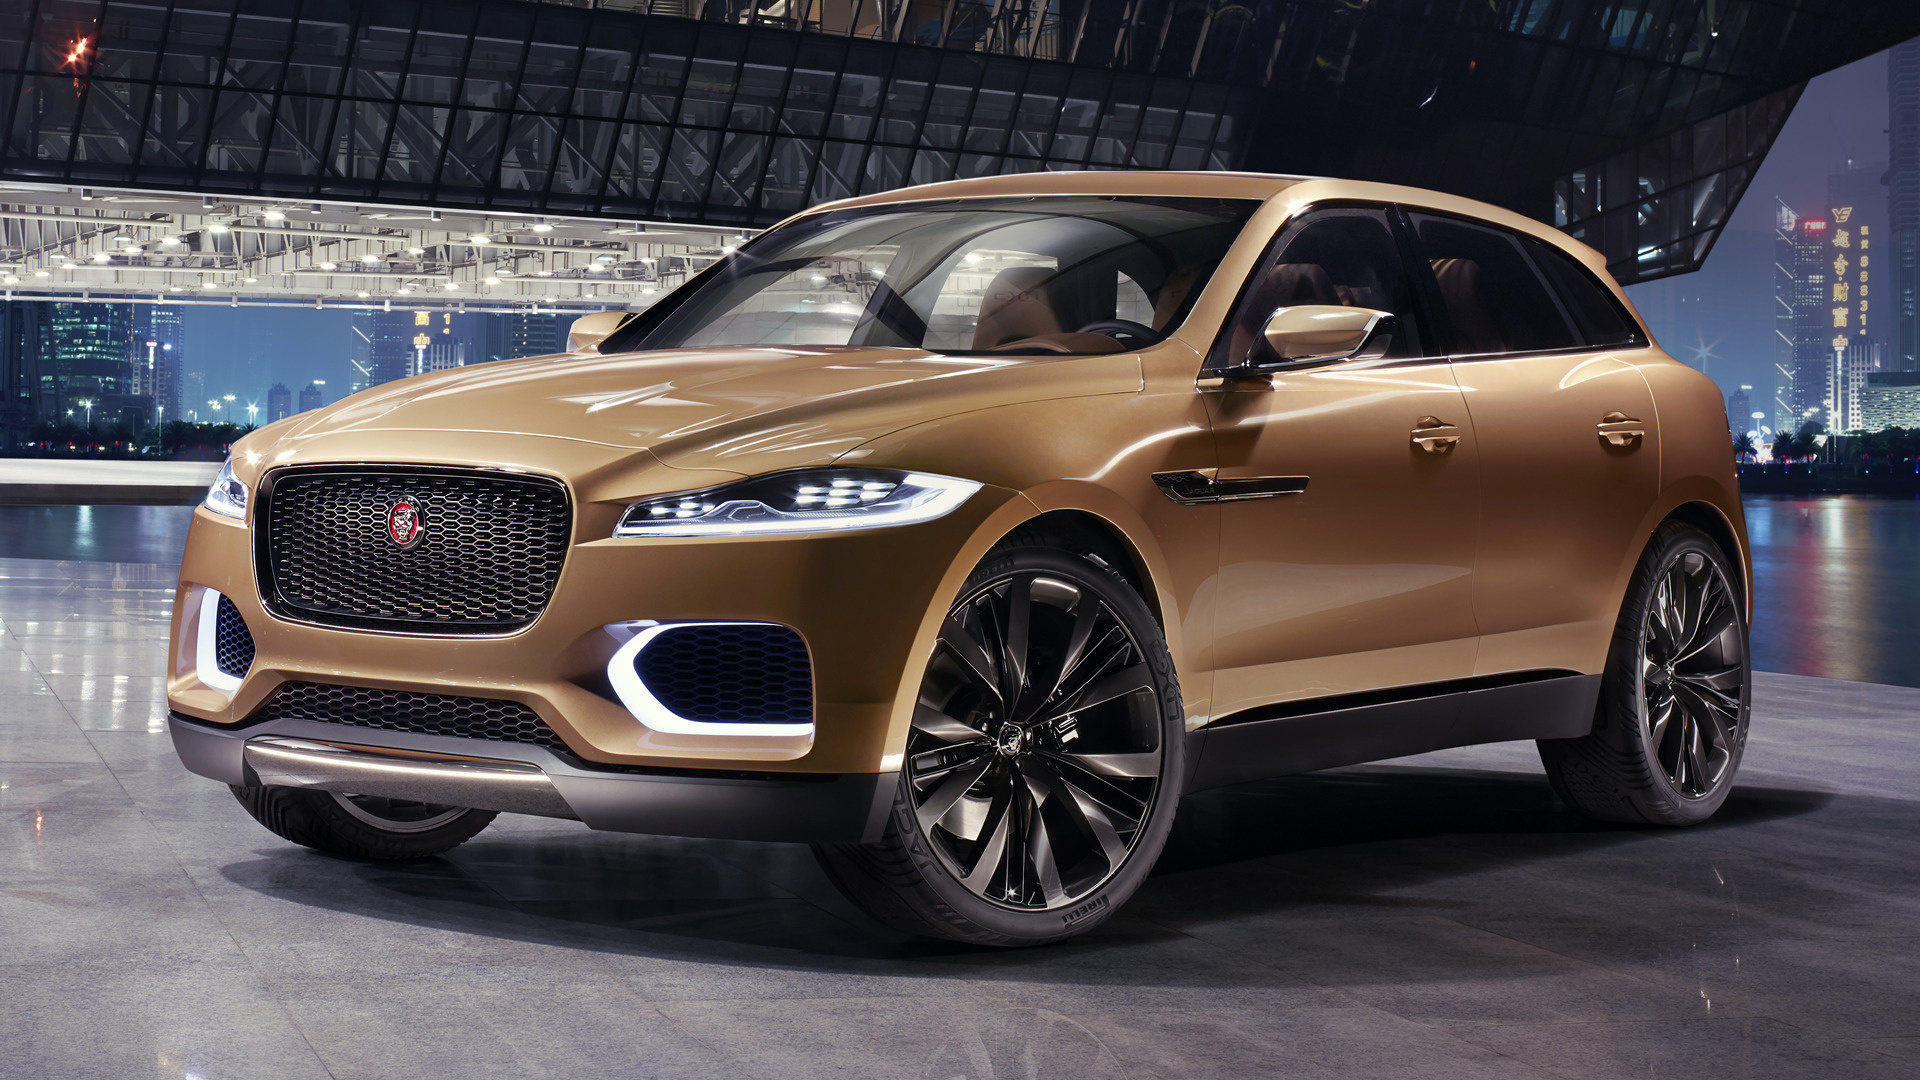 Jaguar C-X17 5-Seater Concept (2013) Wallpapers and HD ...